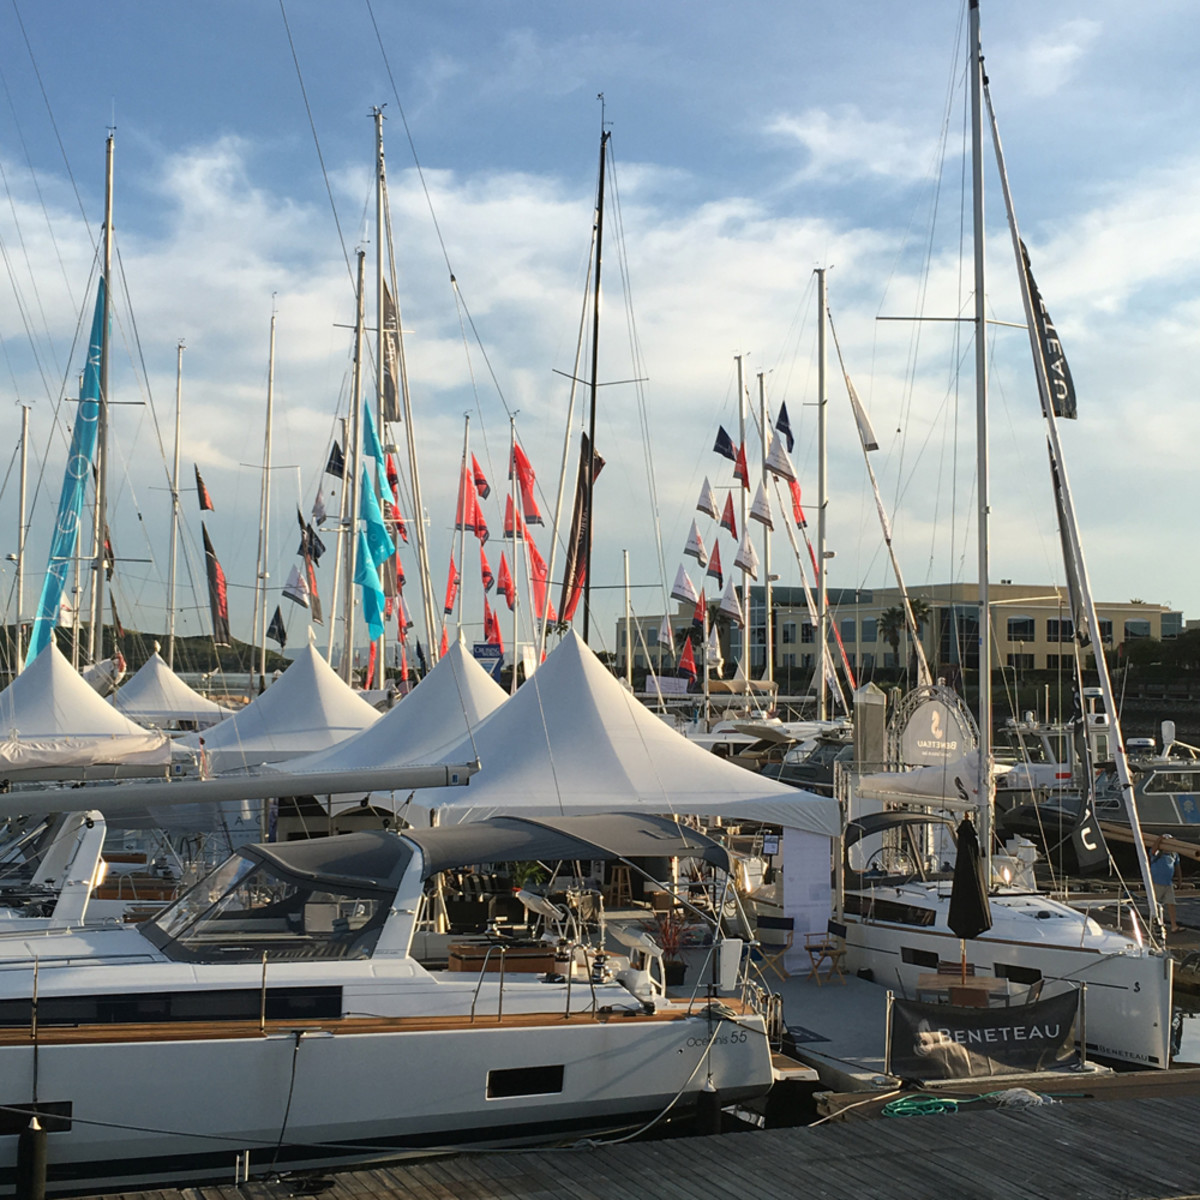 Beneteau, whose Oceanis 55 is shown, is among the builders that will have boats on display at the show.